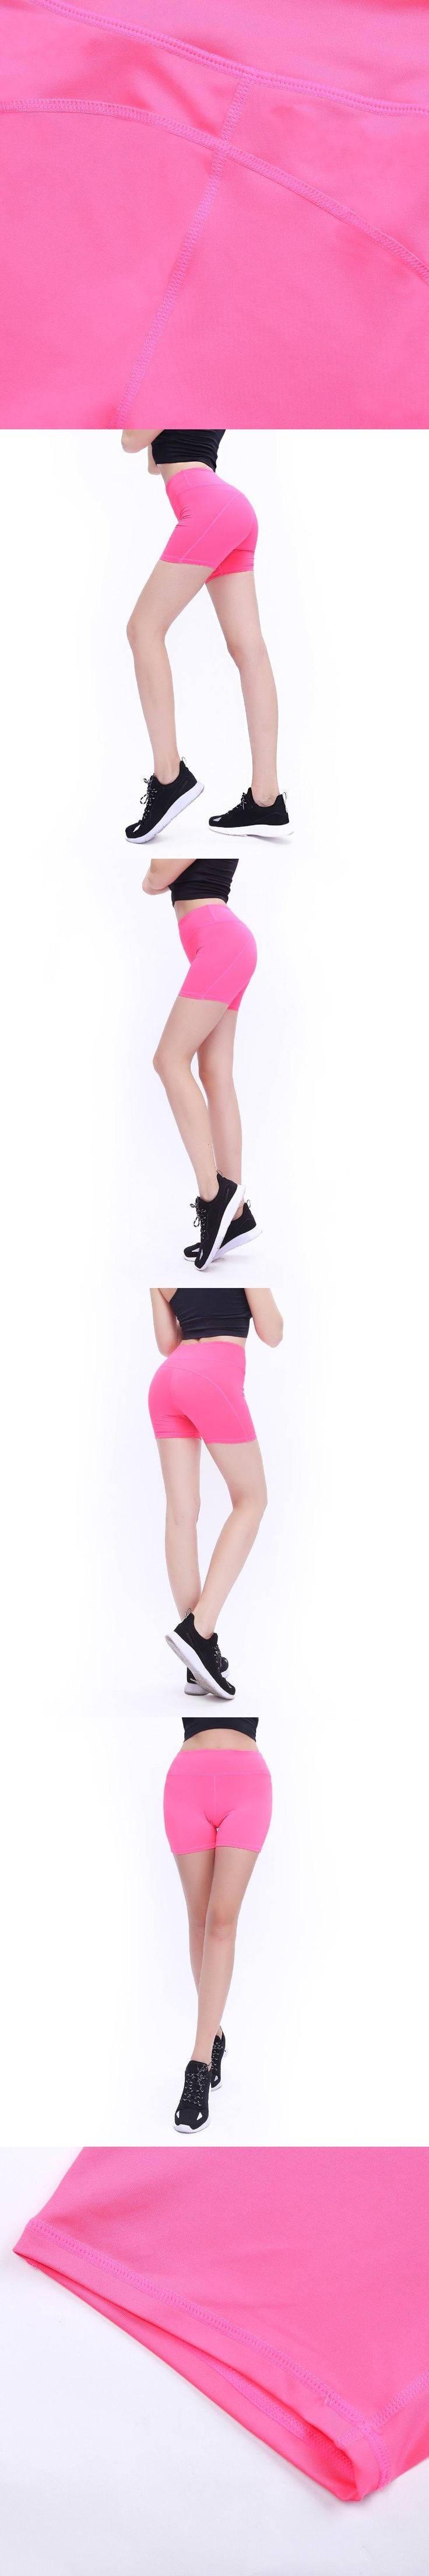 Women Summer Pink Gymming Shorts 2017 Fashion Women's Sporting Cool Adventure Time Short Fitness Workout Shorts Active Bottoms